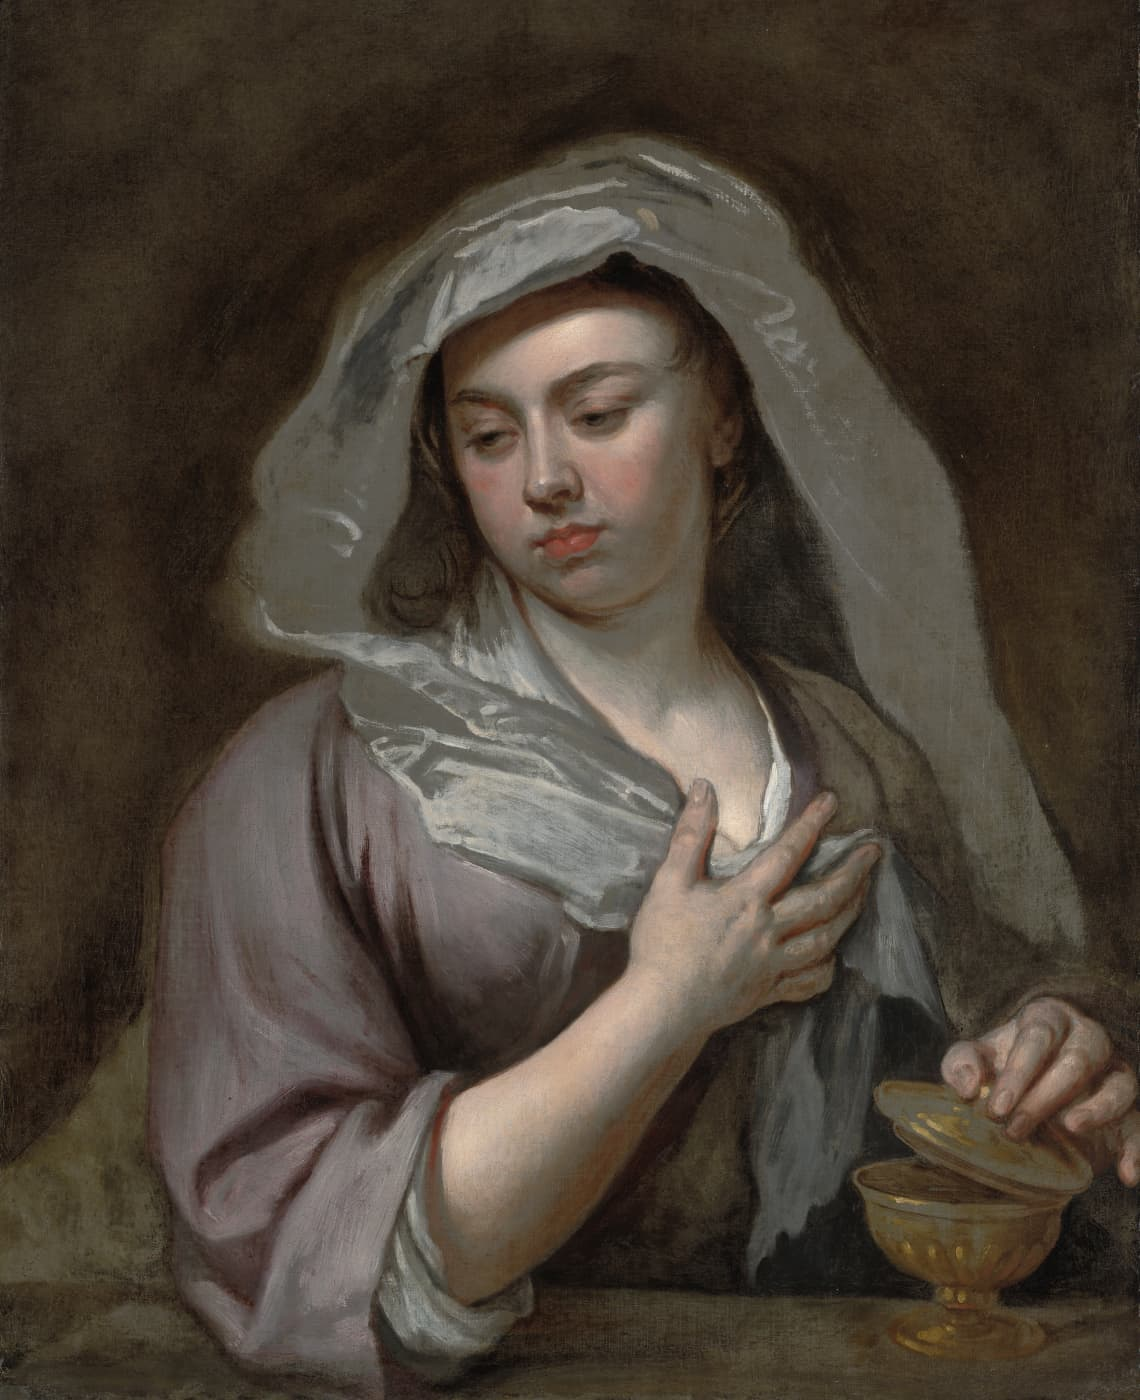 Sir Godfrey Kneller, portrait of a young lady, this is perhaps the artist's daughter. She wears a silk dress and white veil.